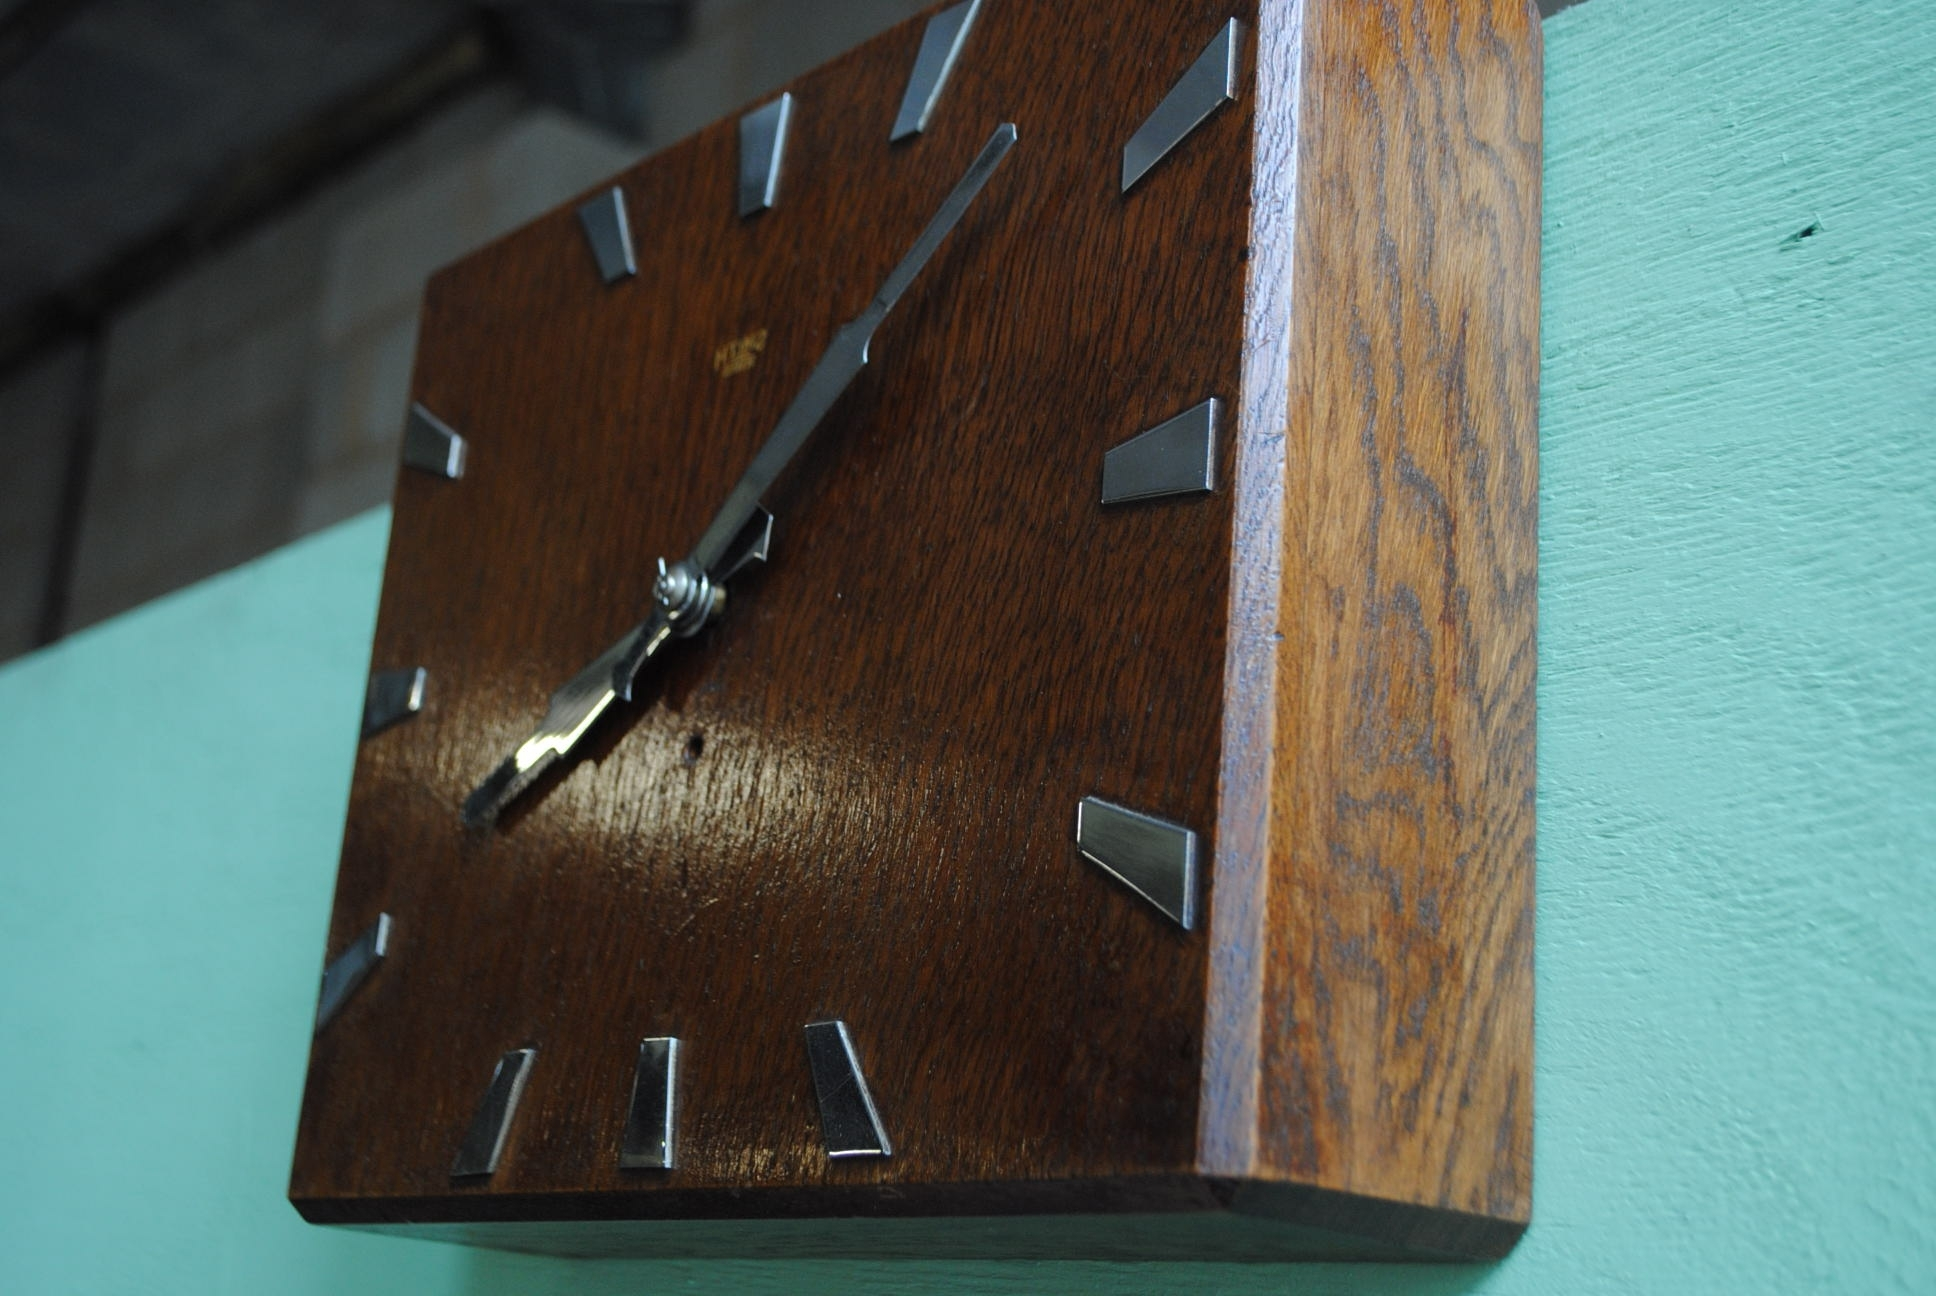 Cloud 9, Art Deco Furniture Sales With Regard To Art Deco Wall Clock (View 20 of 20)